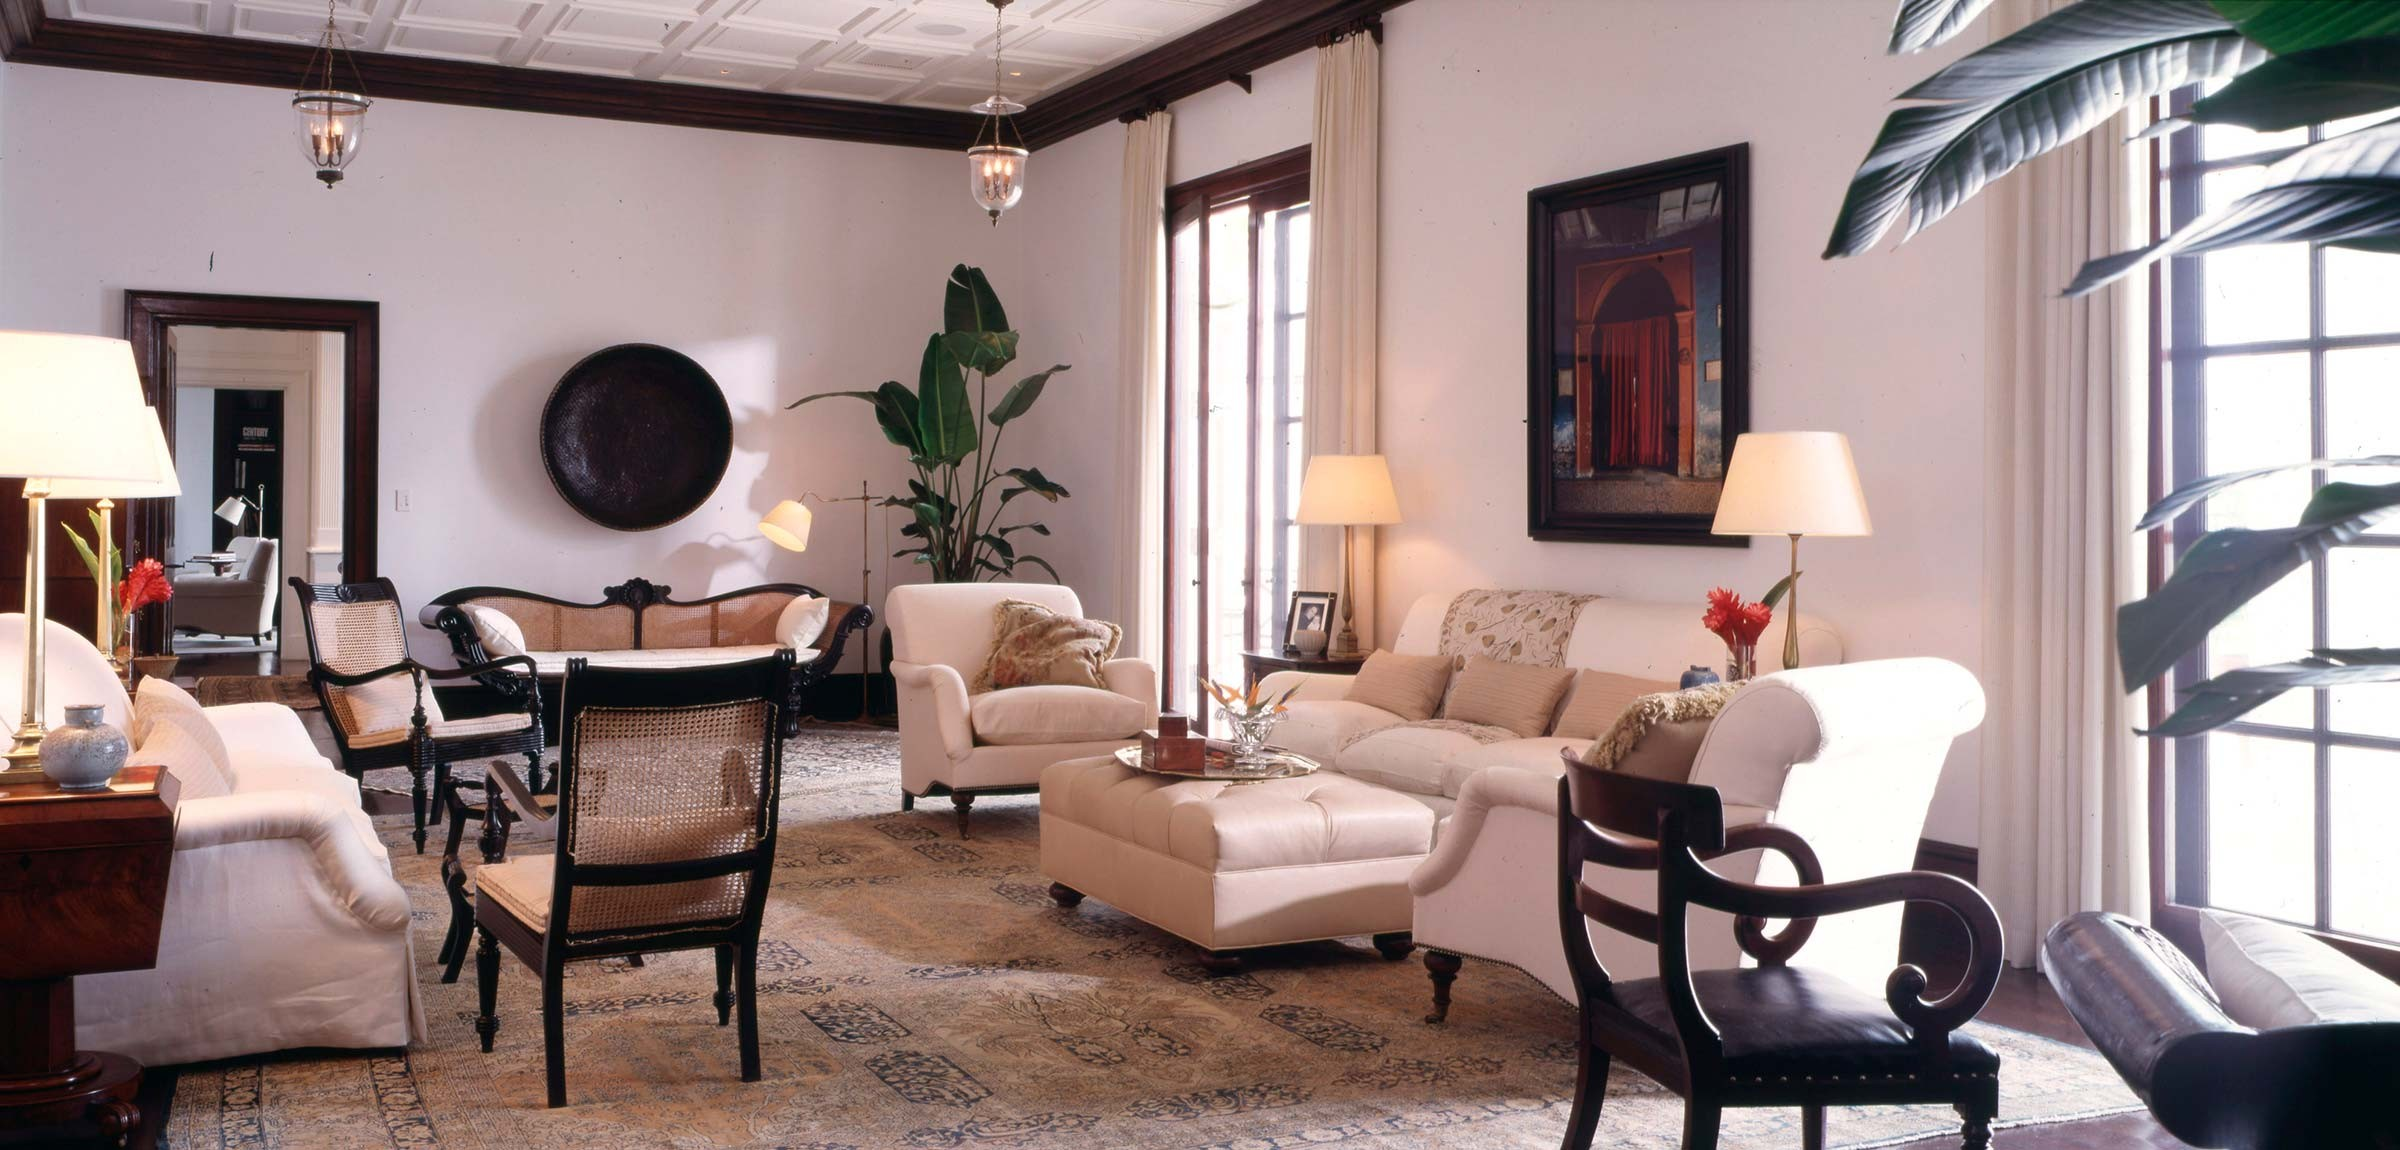 Colonial style house interior in the Bahamas